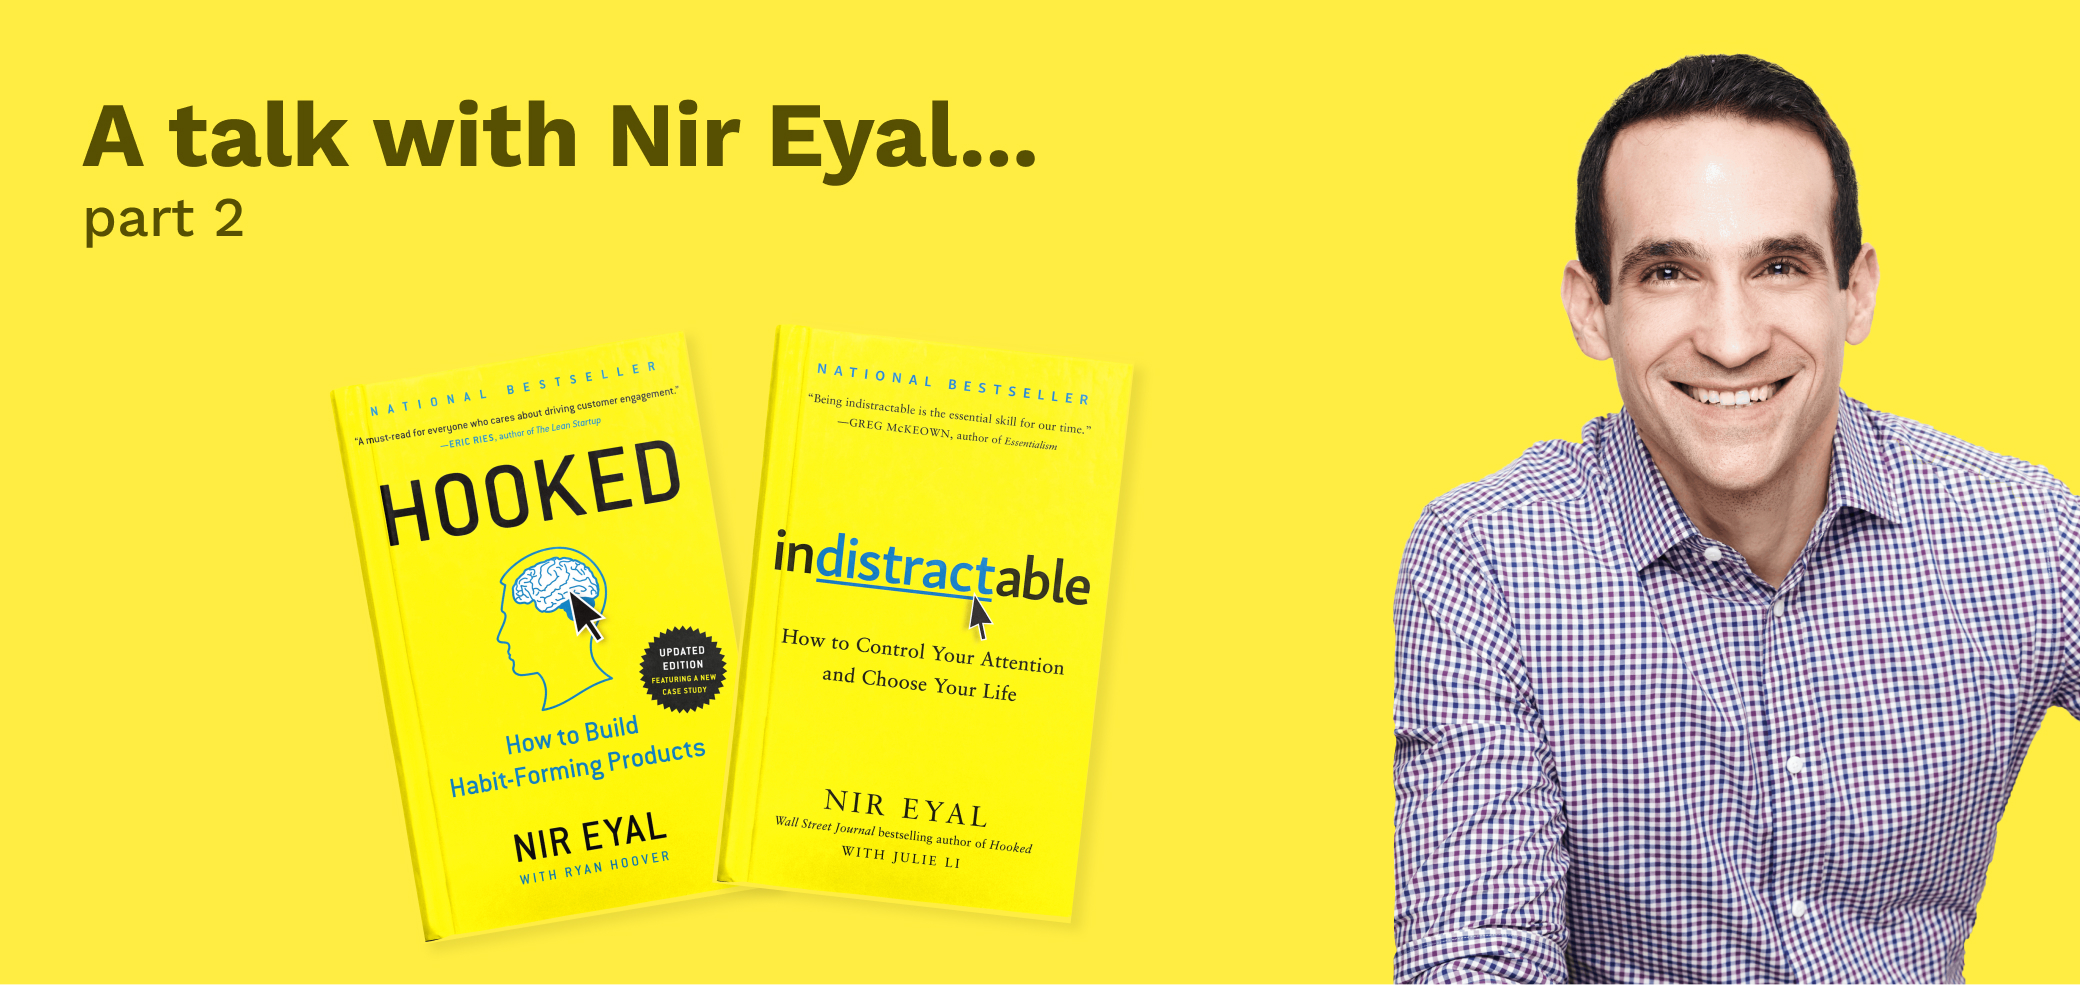 nir eyal interview part 2